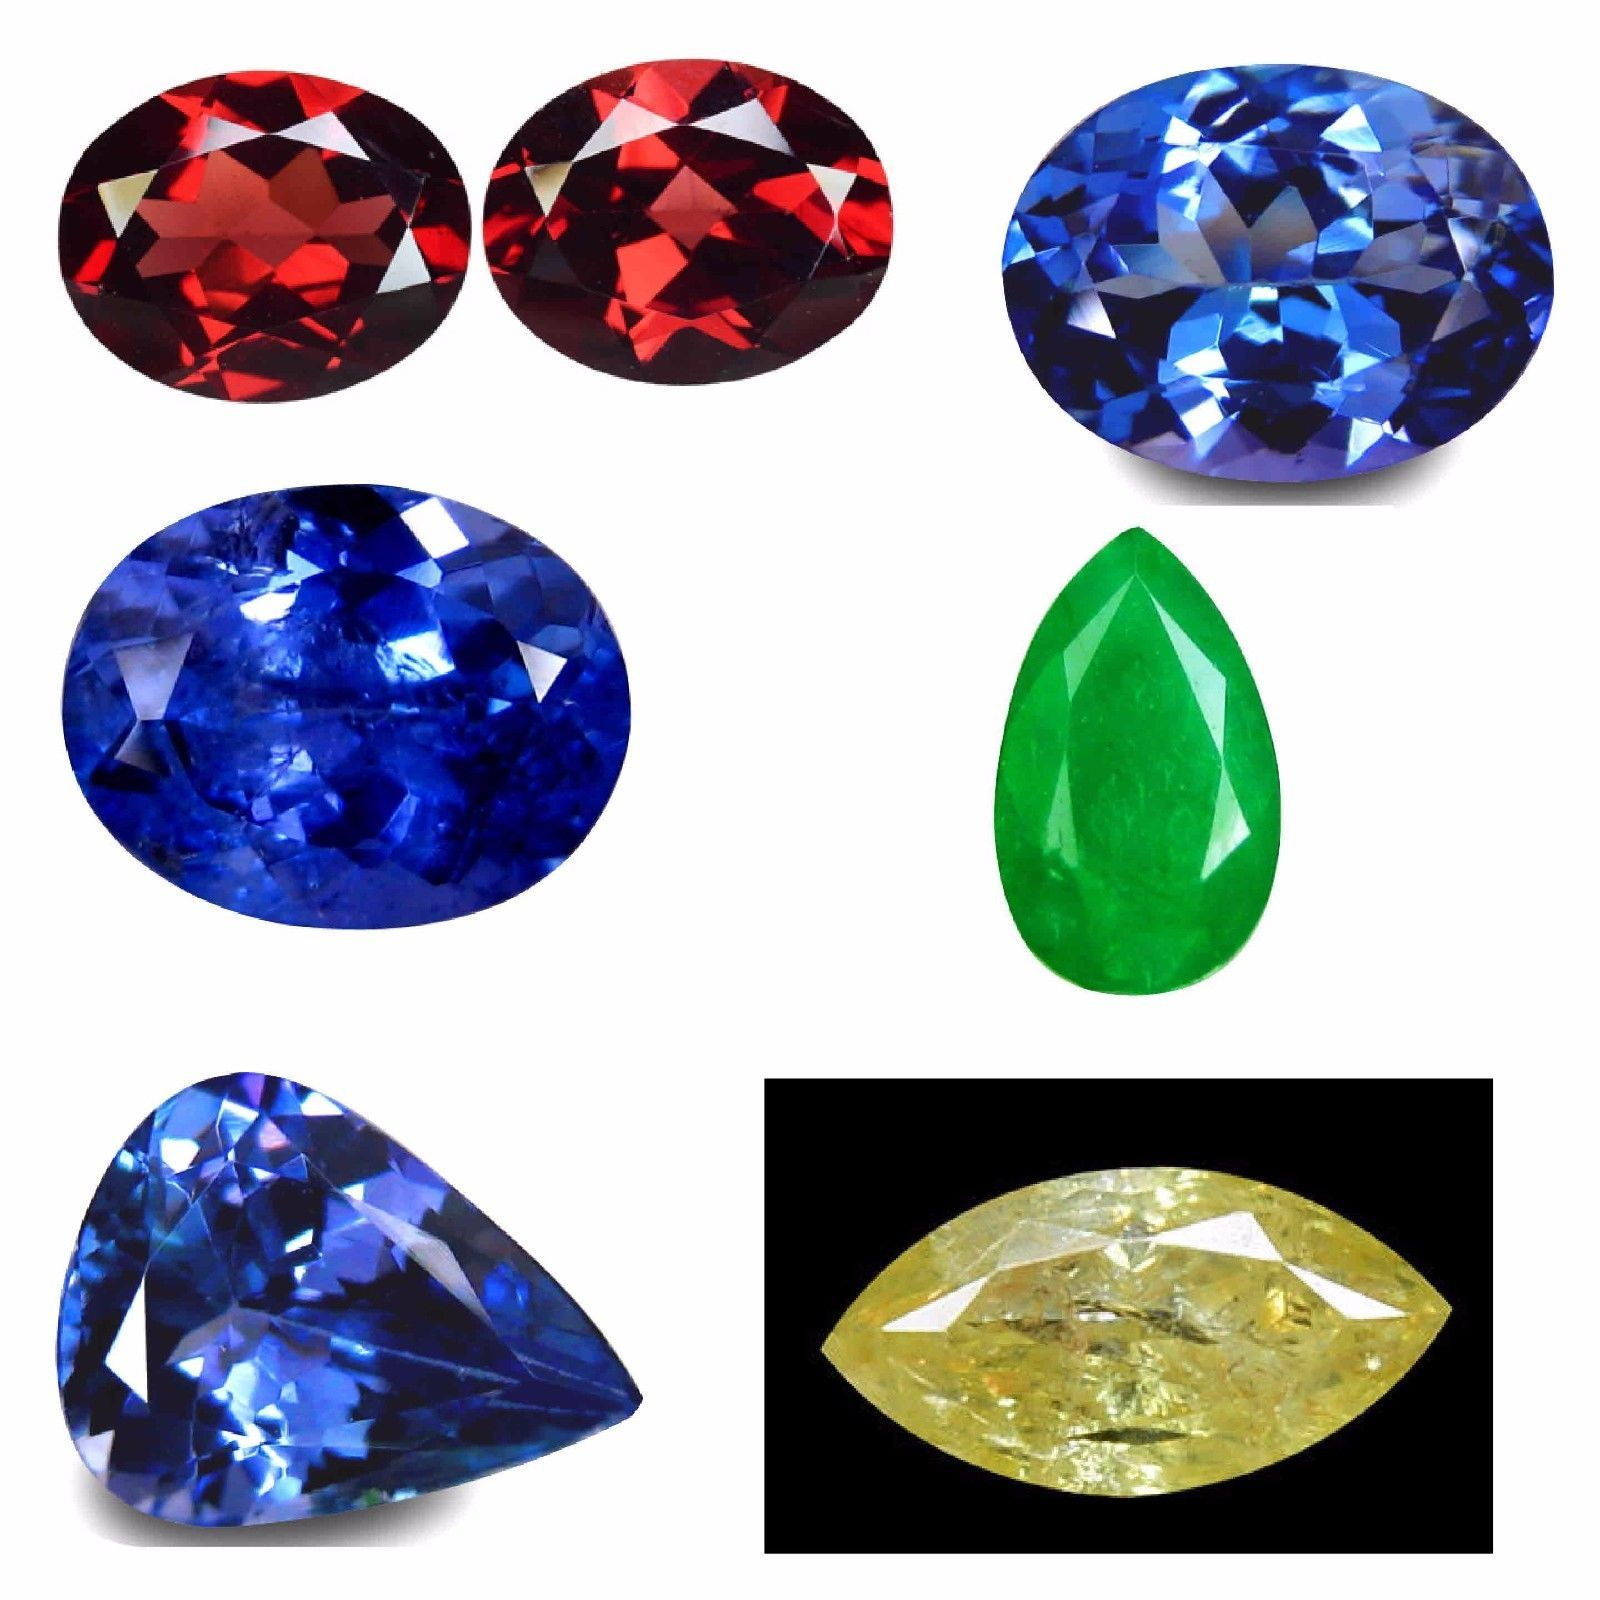 Other Loose Gemstones 282: Multiple – Various Natural Earth Mined Gemstones, Wholesale Lot -> BUY IT NOW ONLY: $250 on eBay!